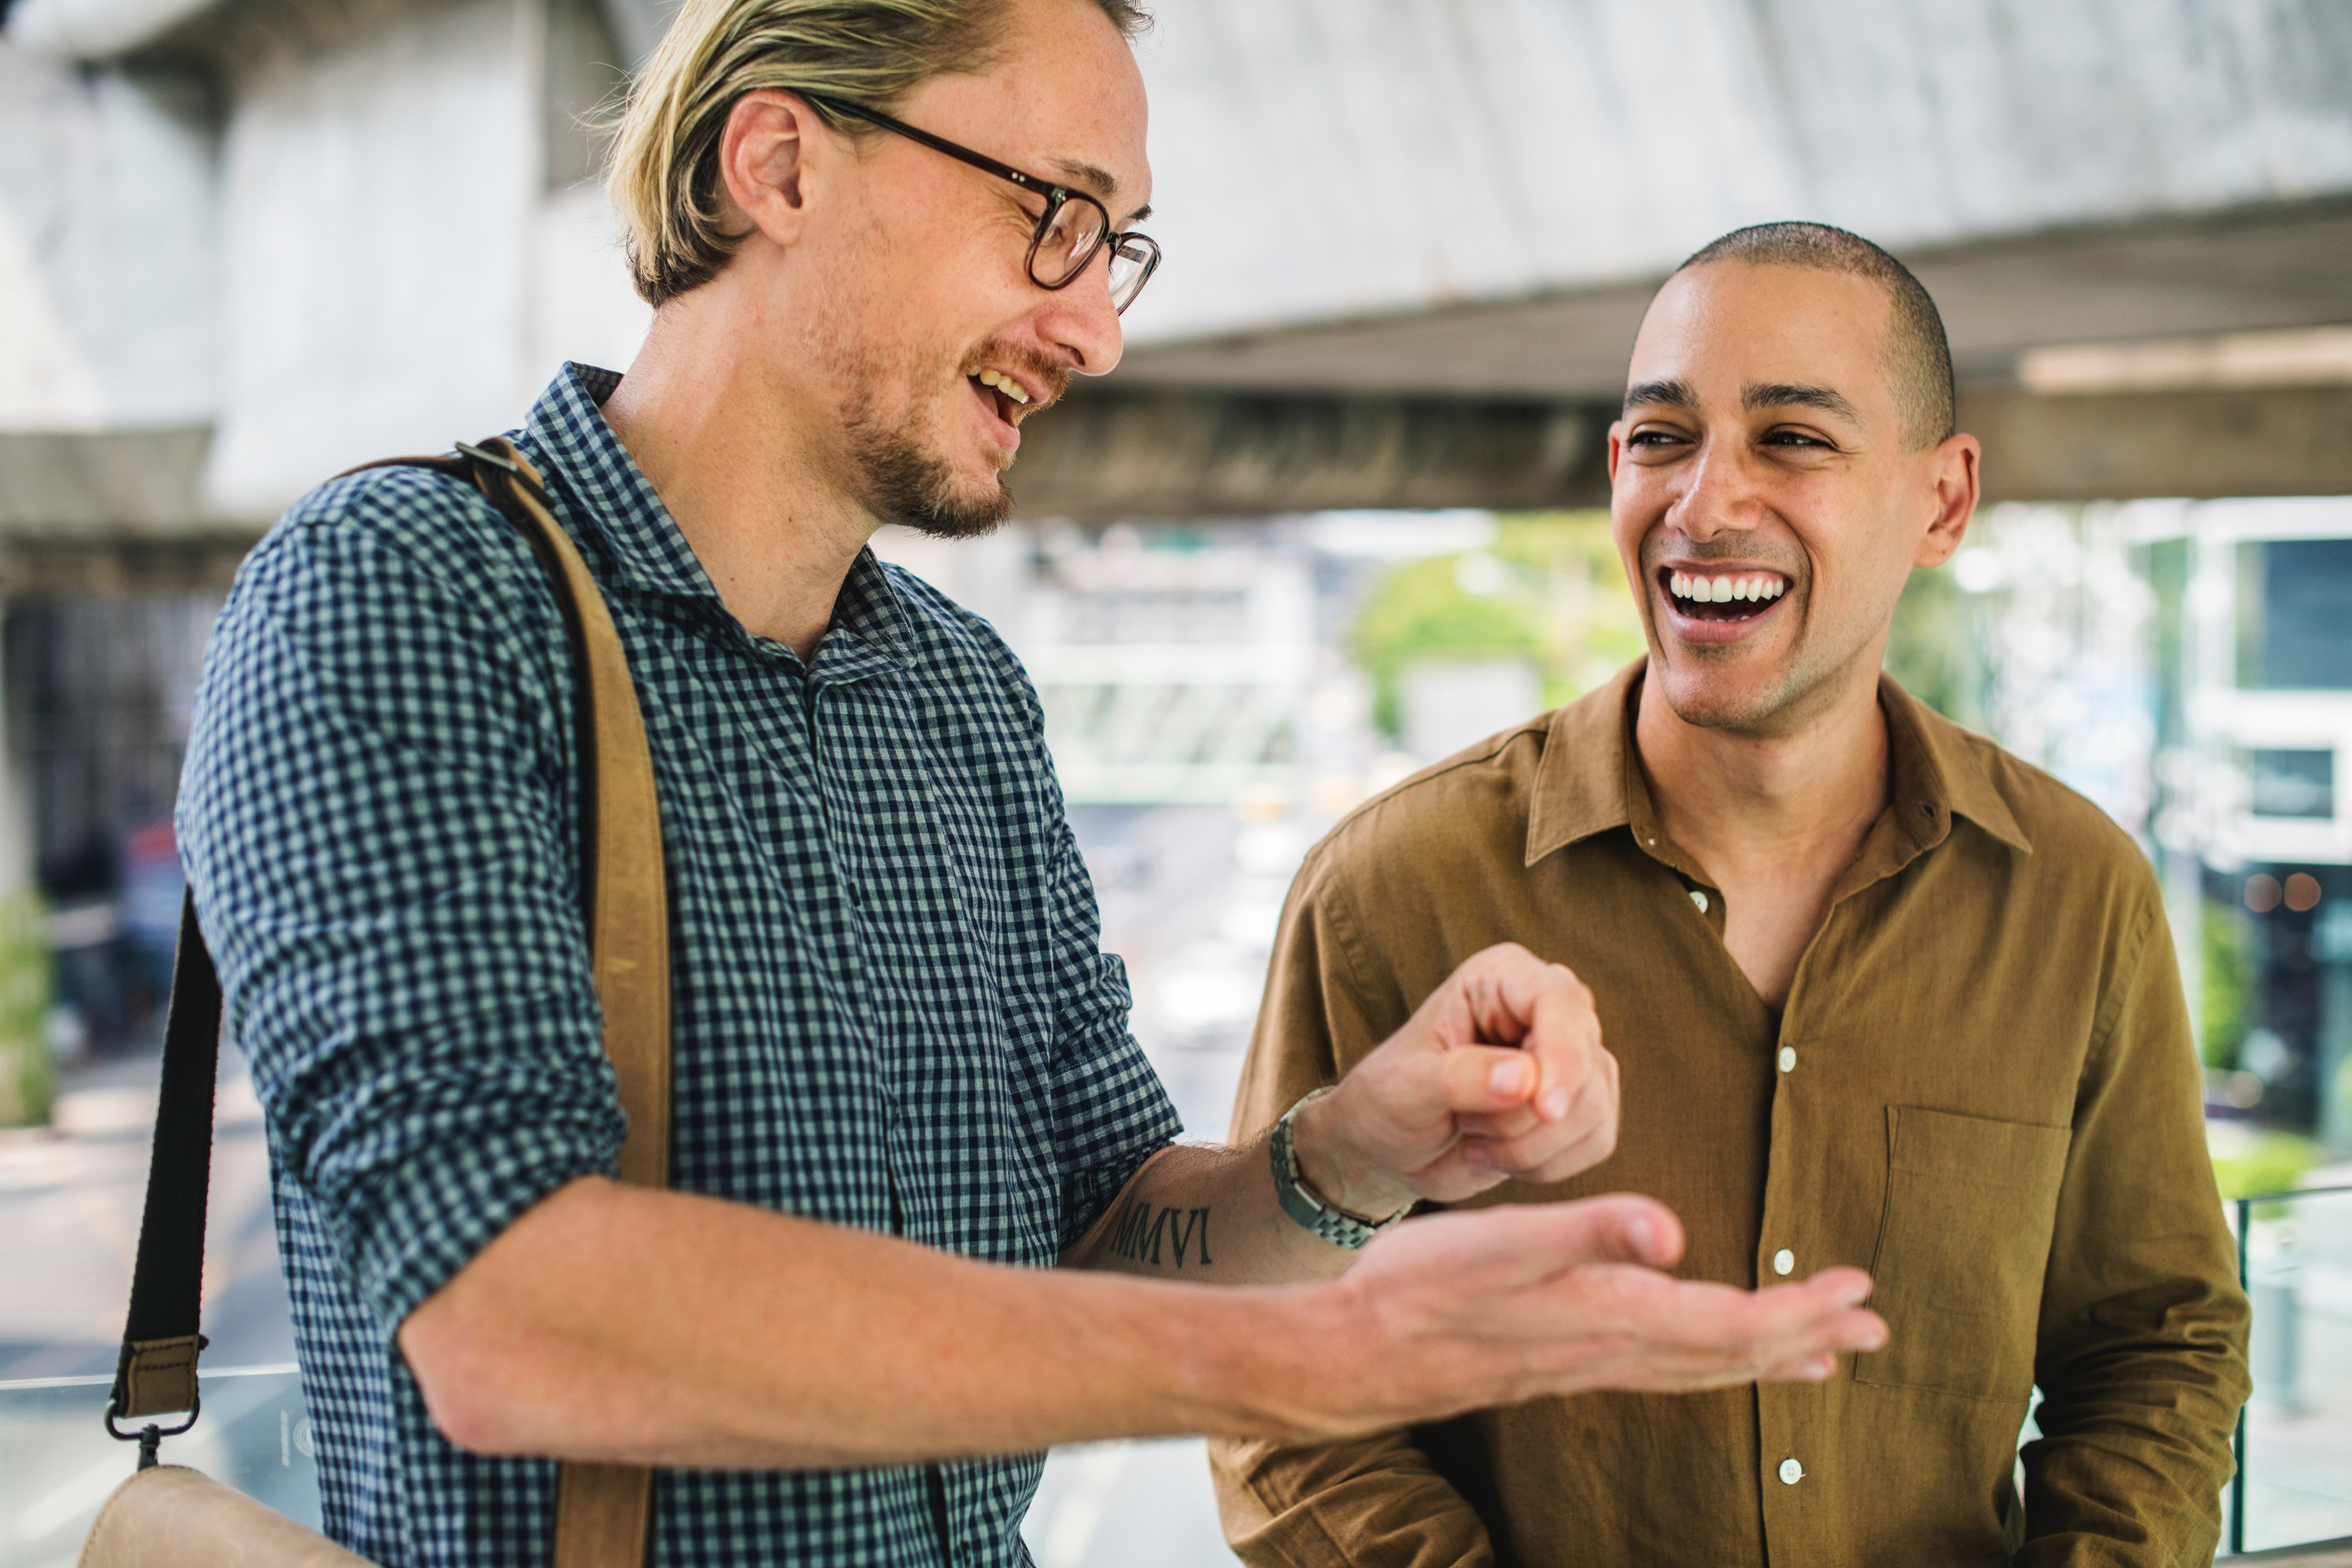 Community connection in business